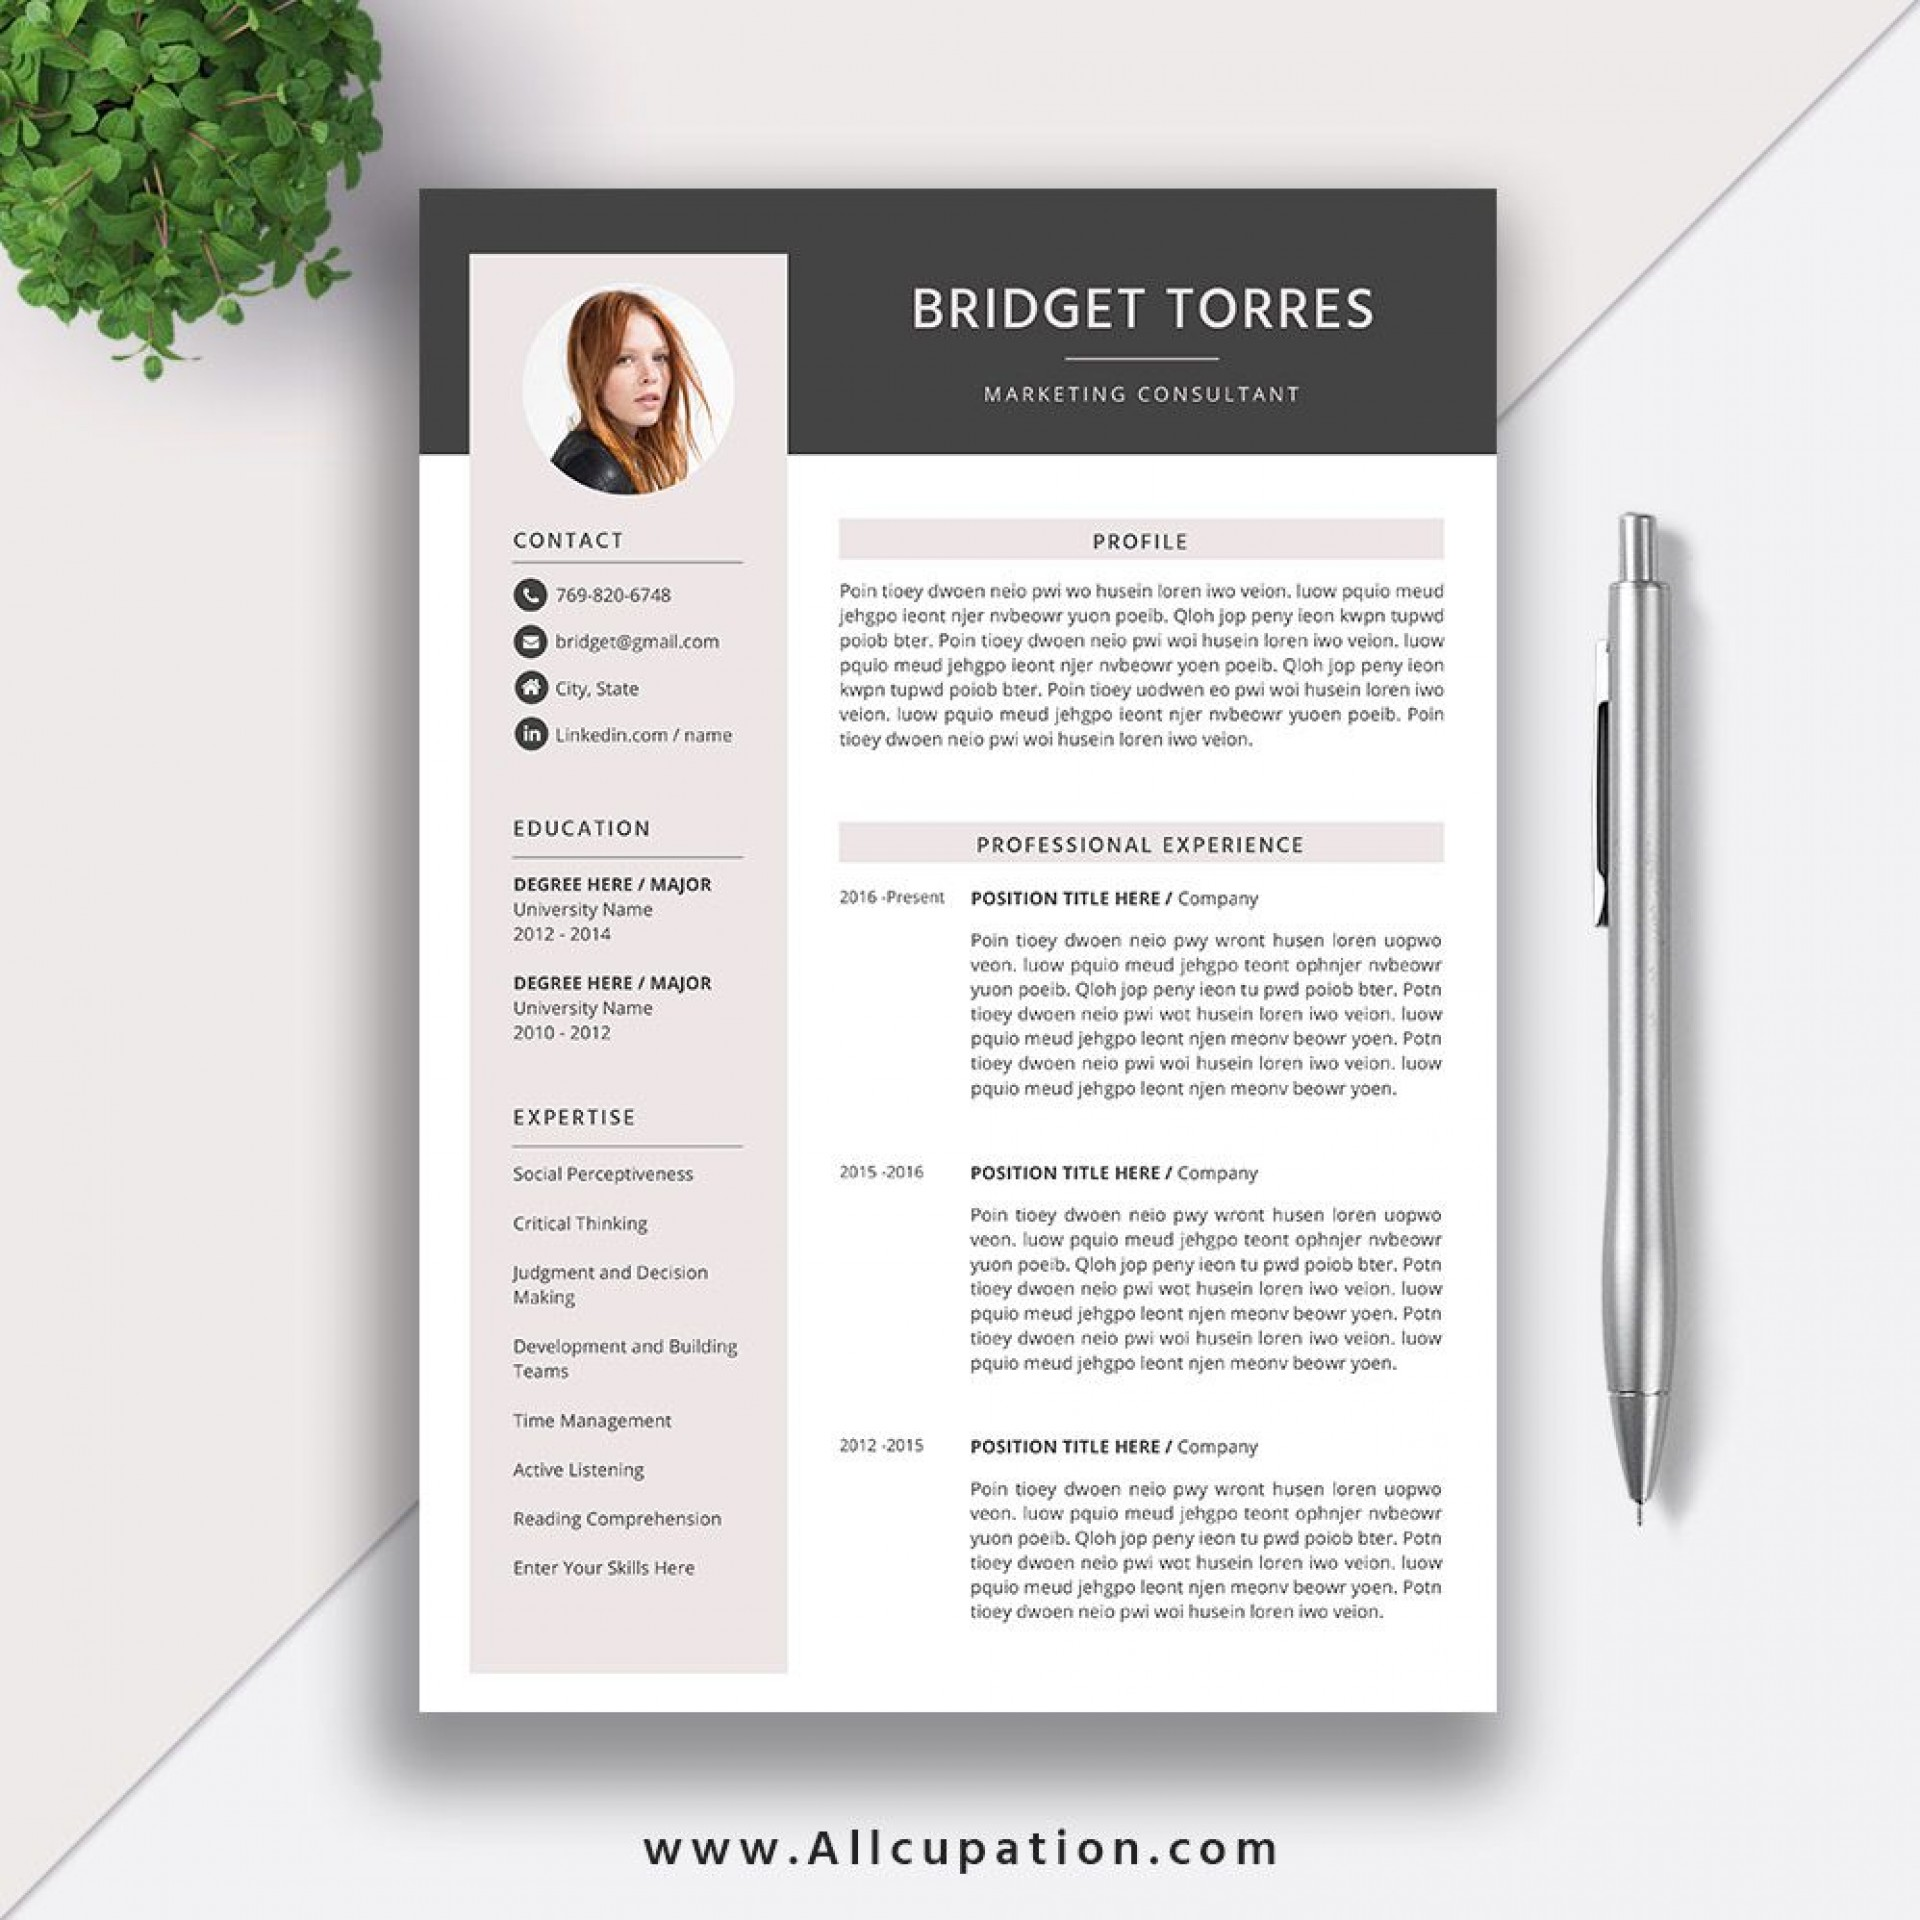 005 Best Microsoft Word Resume Template 2020 Picture  Free1920